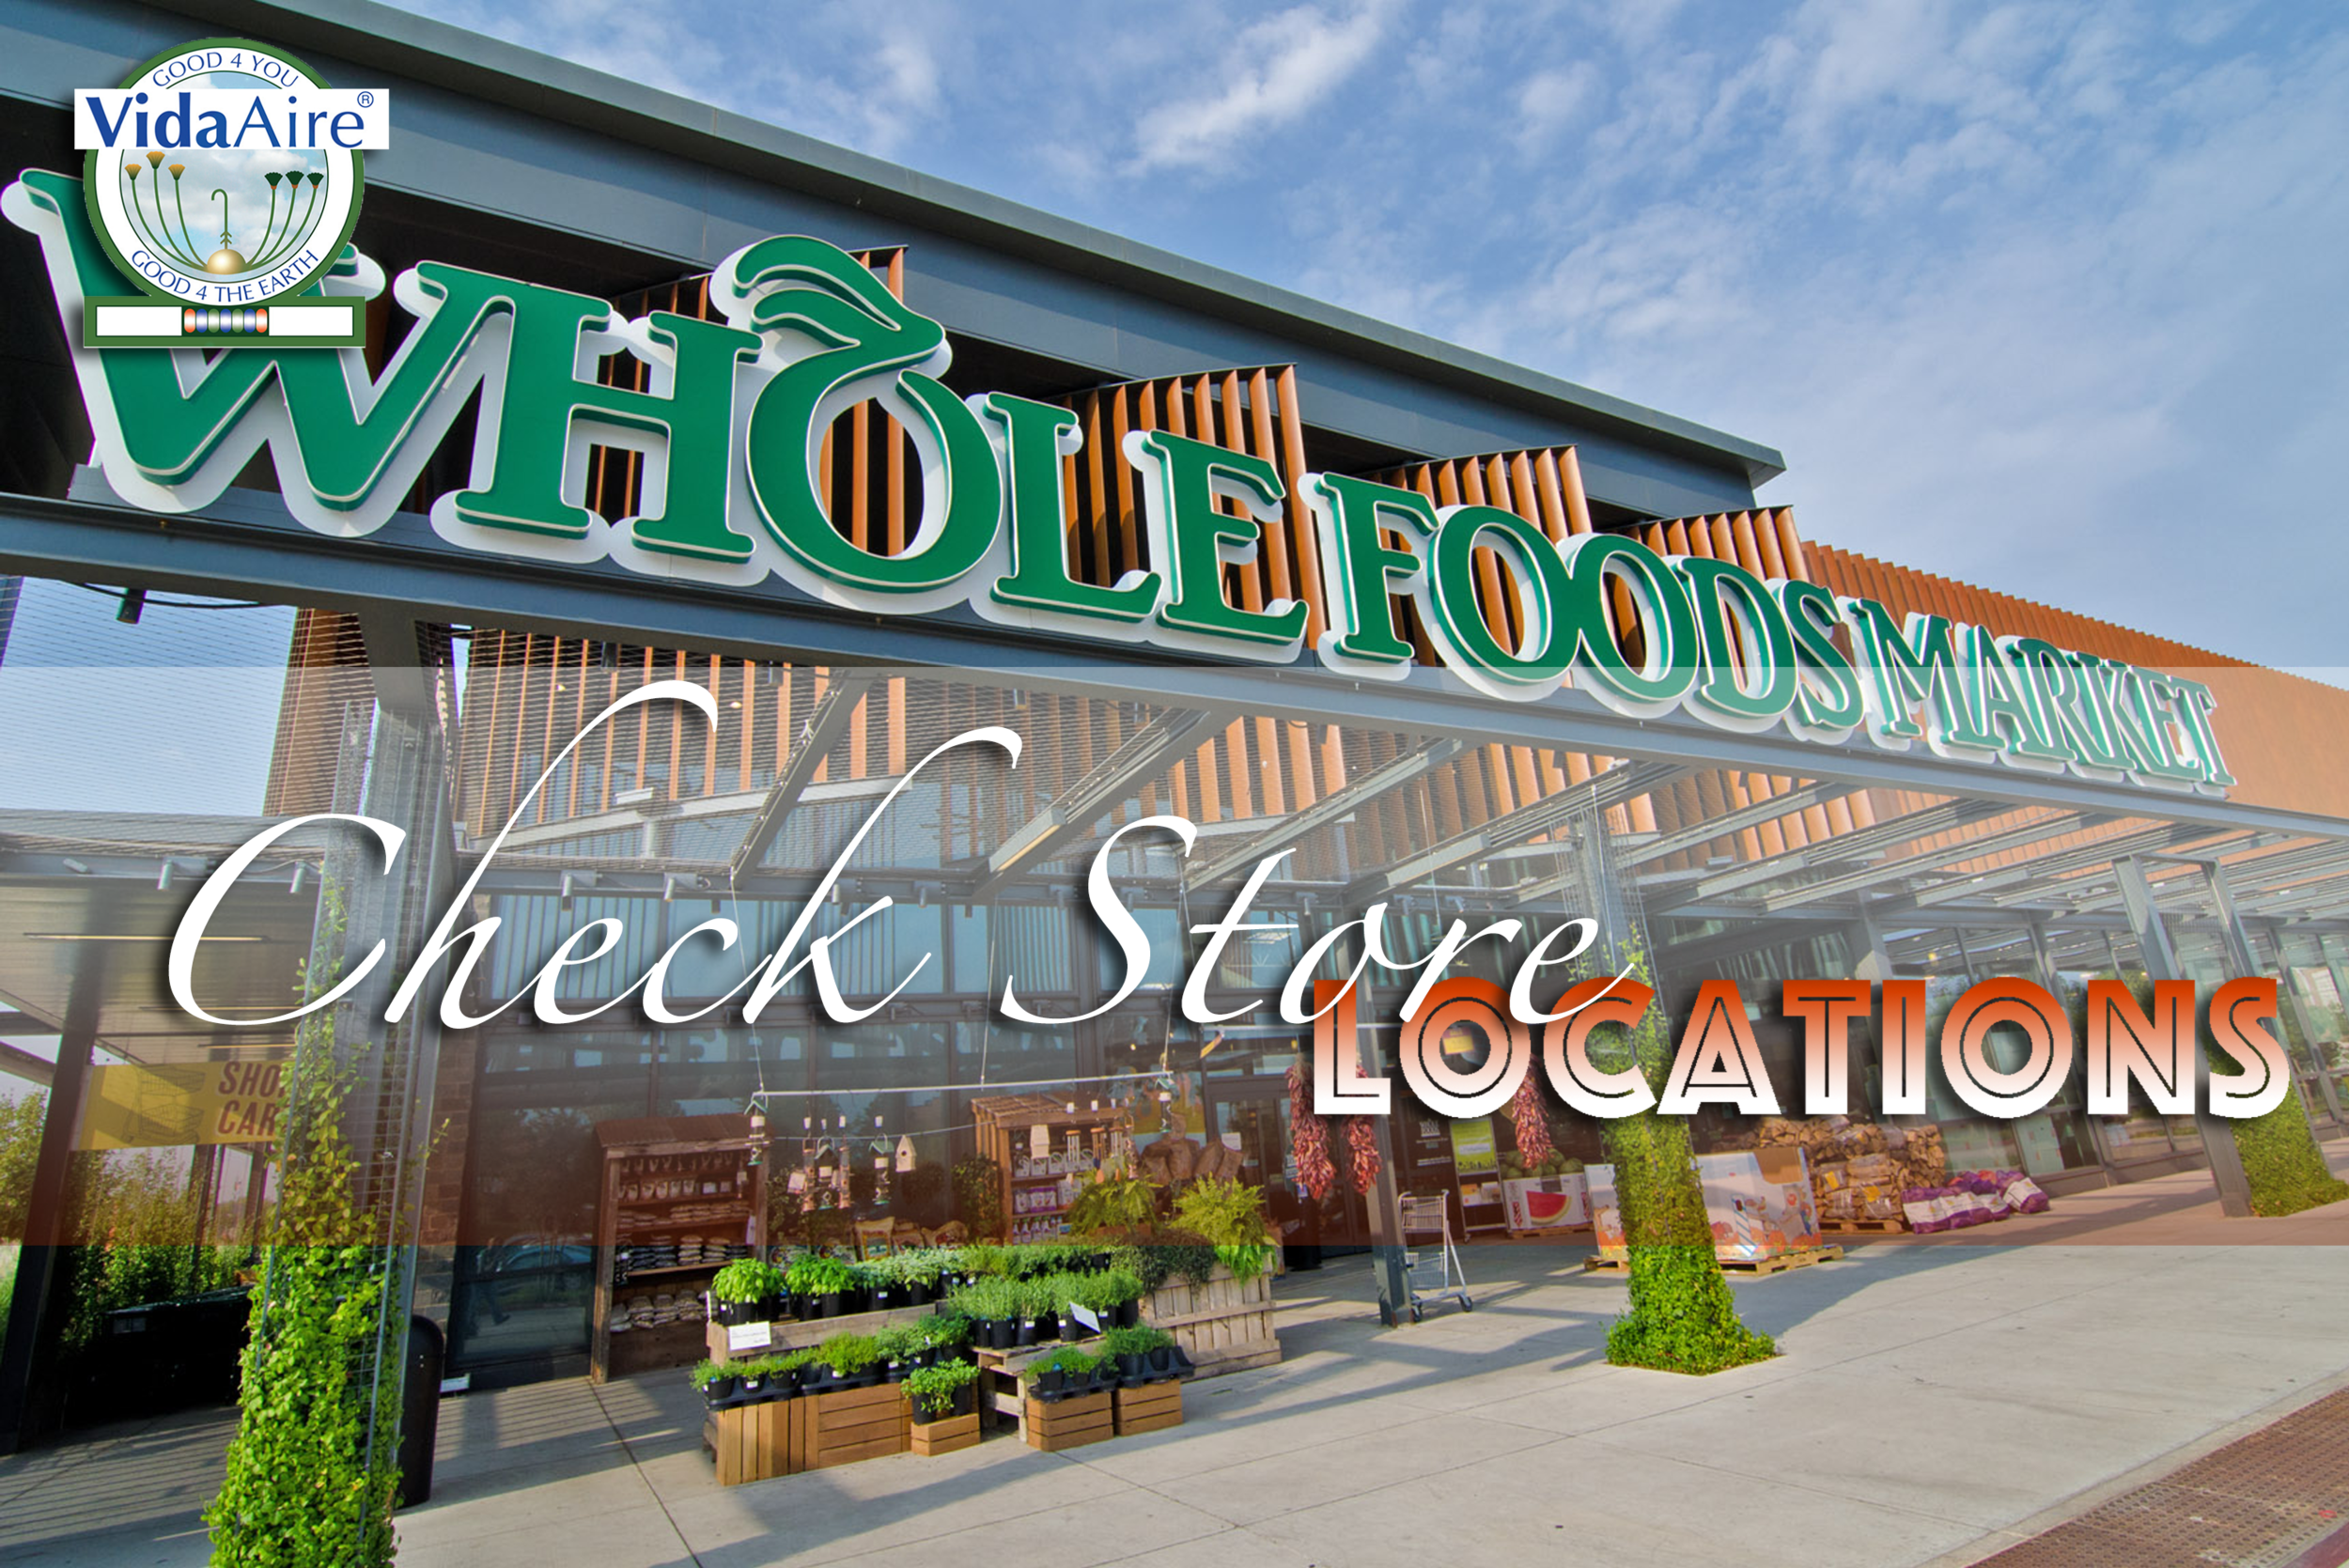 wholefoodsstorelocations.png